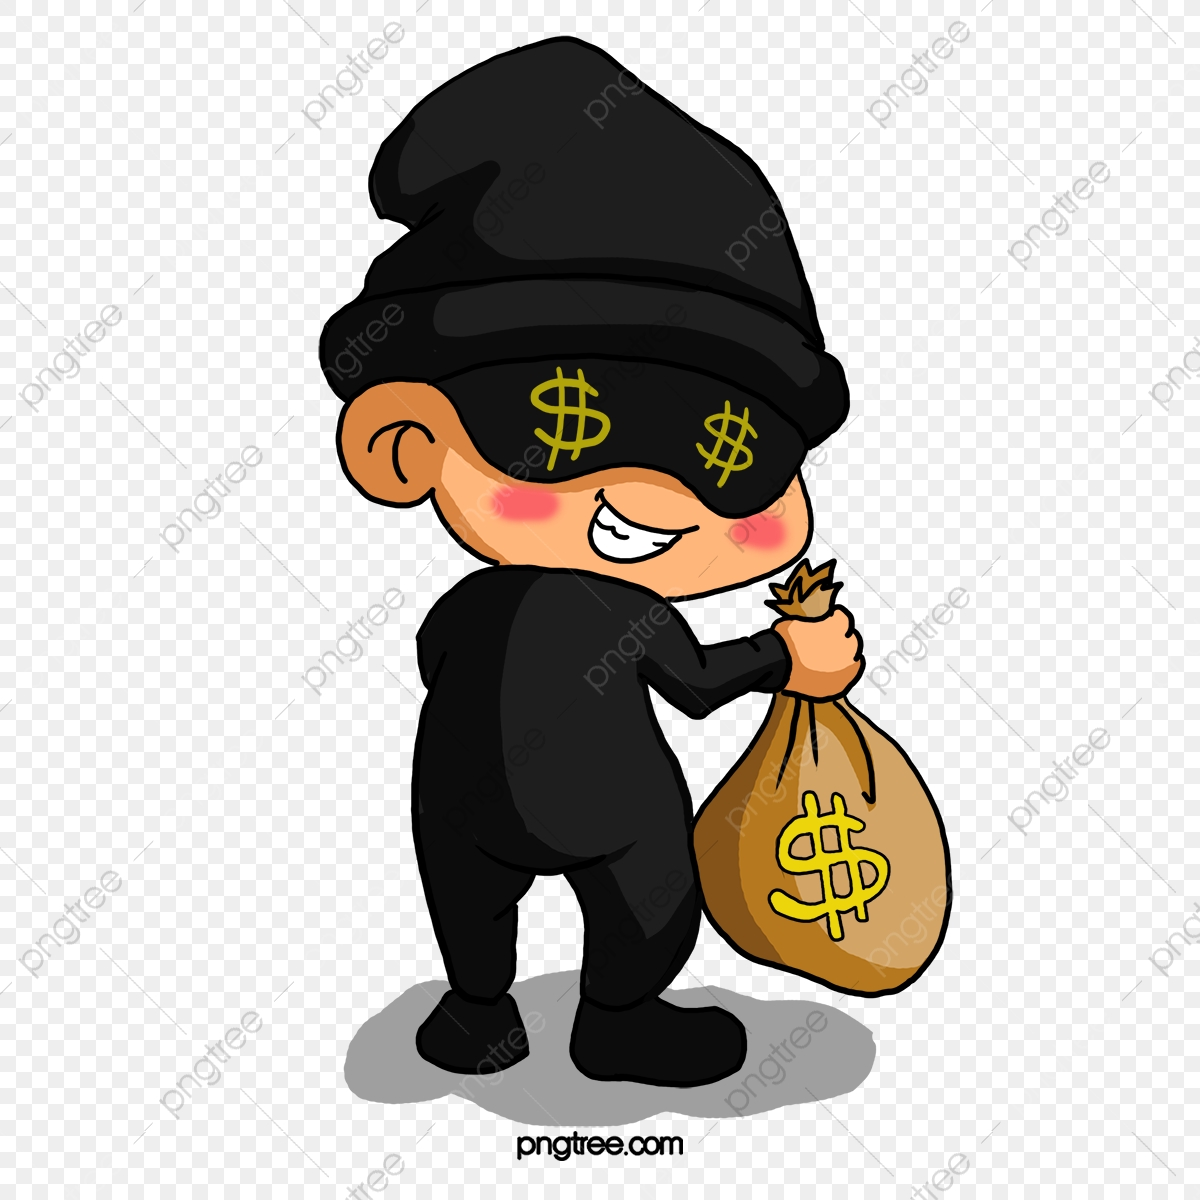 Thief, Bad Person, Steal Money, Police And Thieves PNG Transparent.